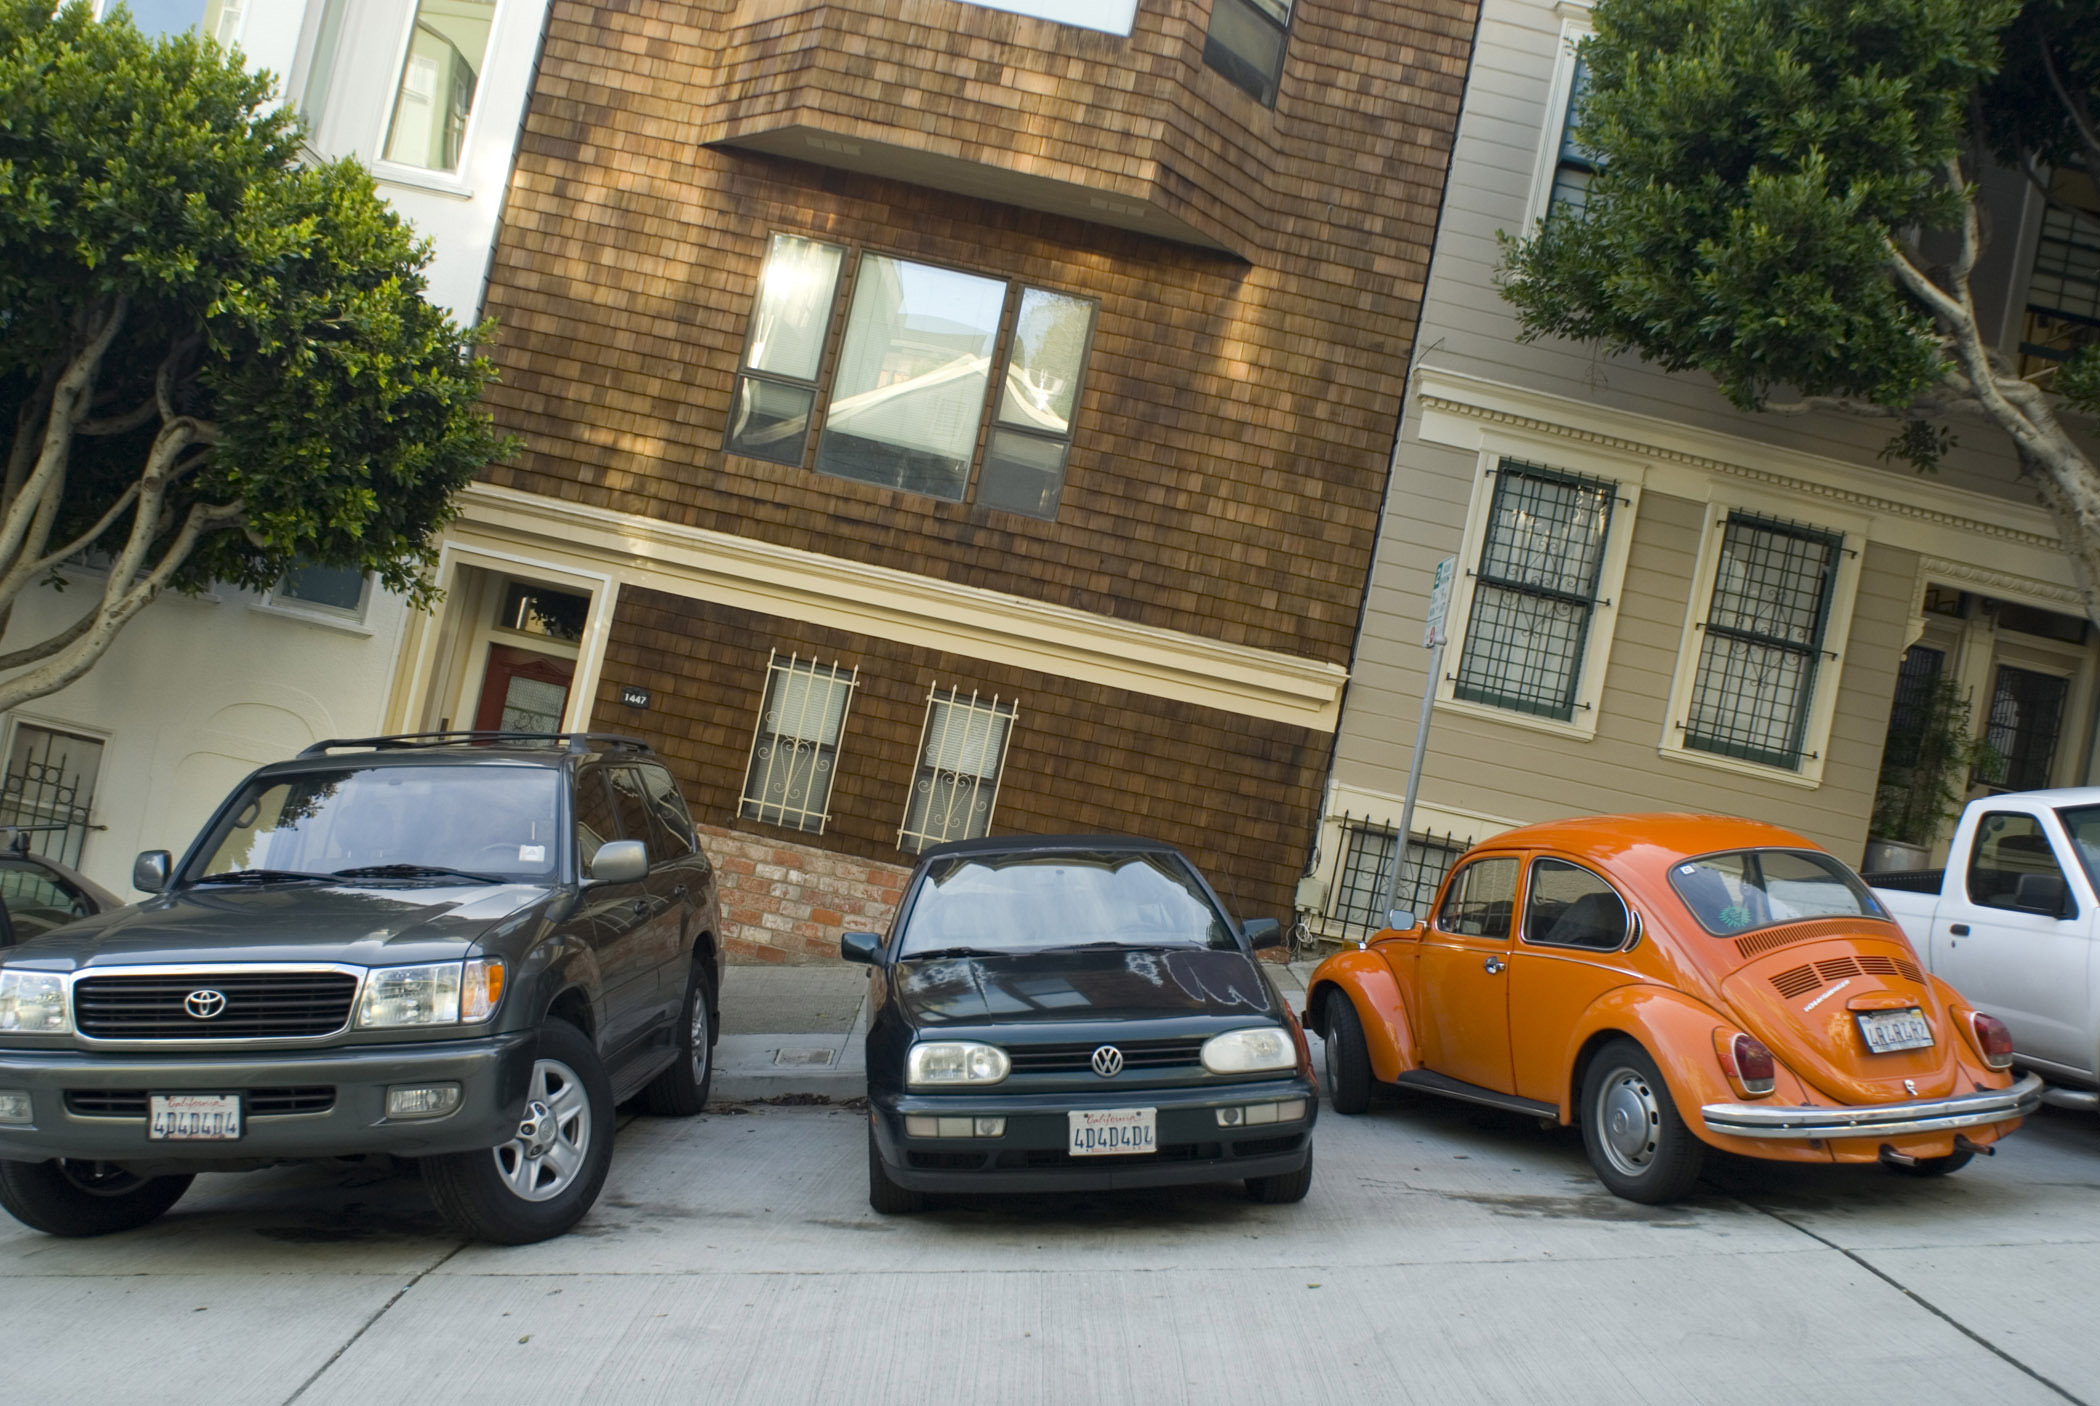 Cars parked side by side in front of residential houses on a steep hill in San Francisco, California, USA